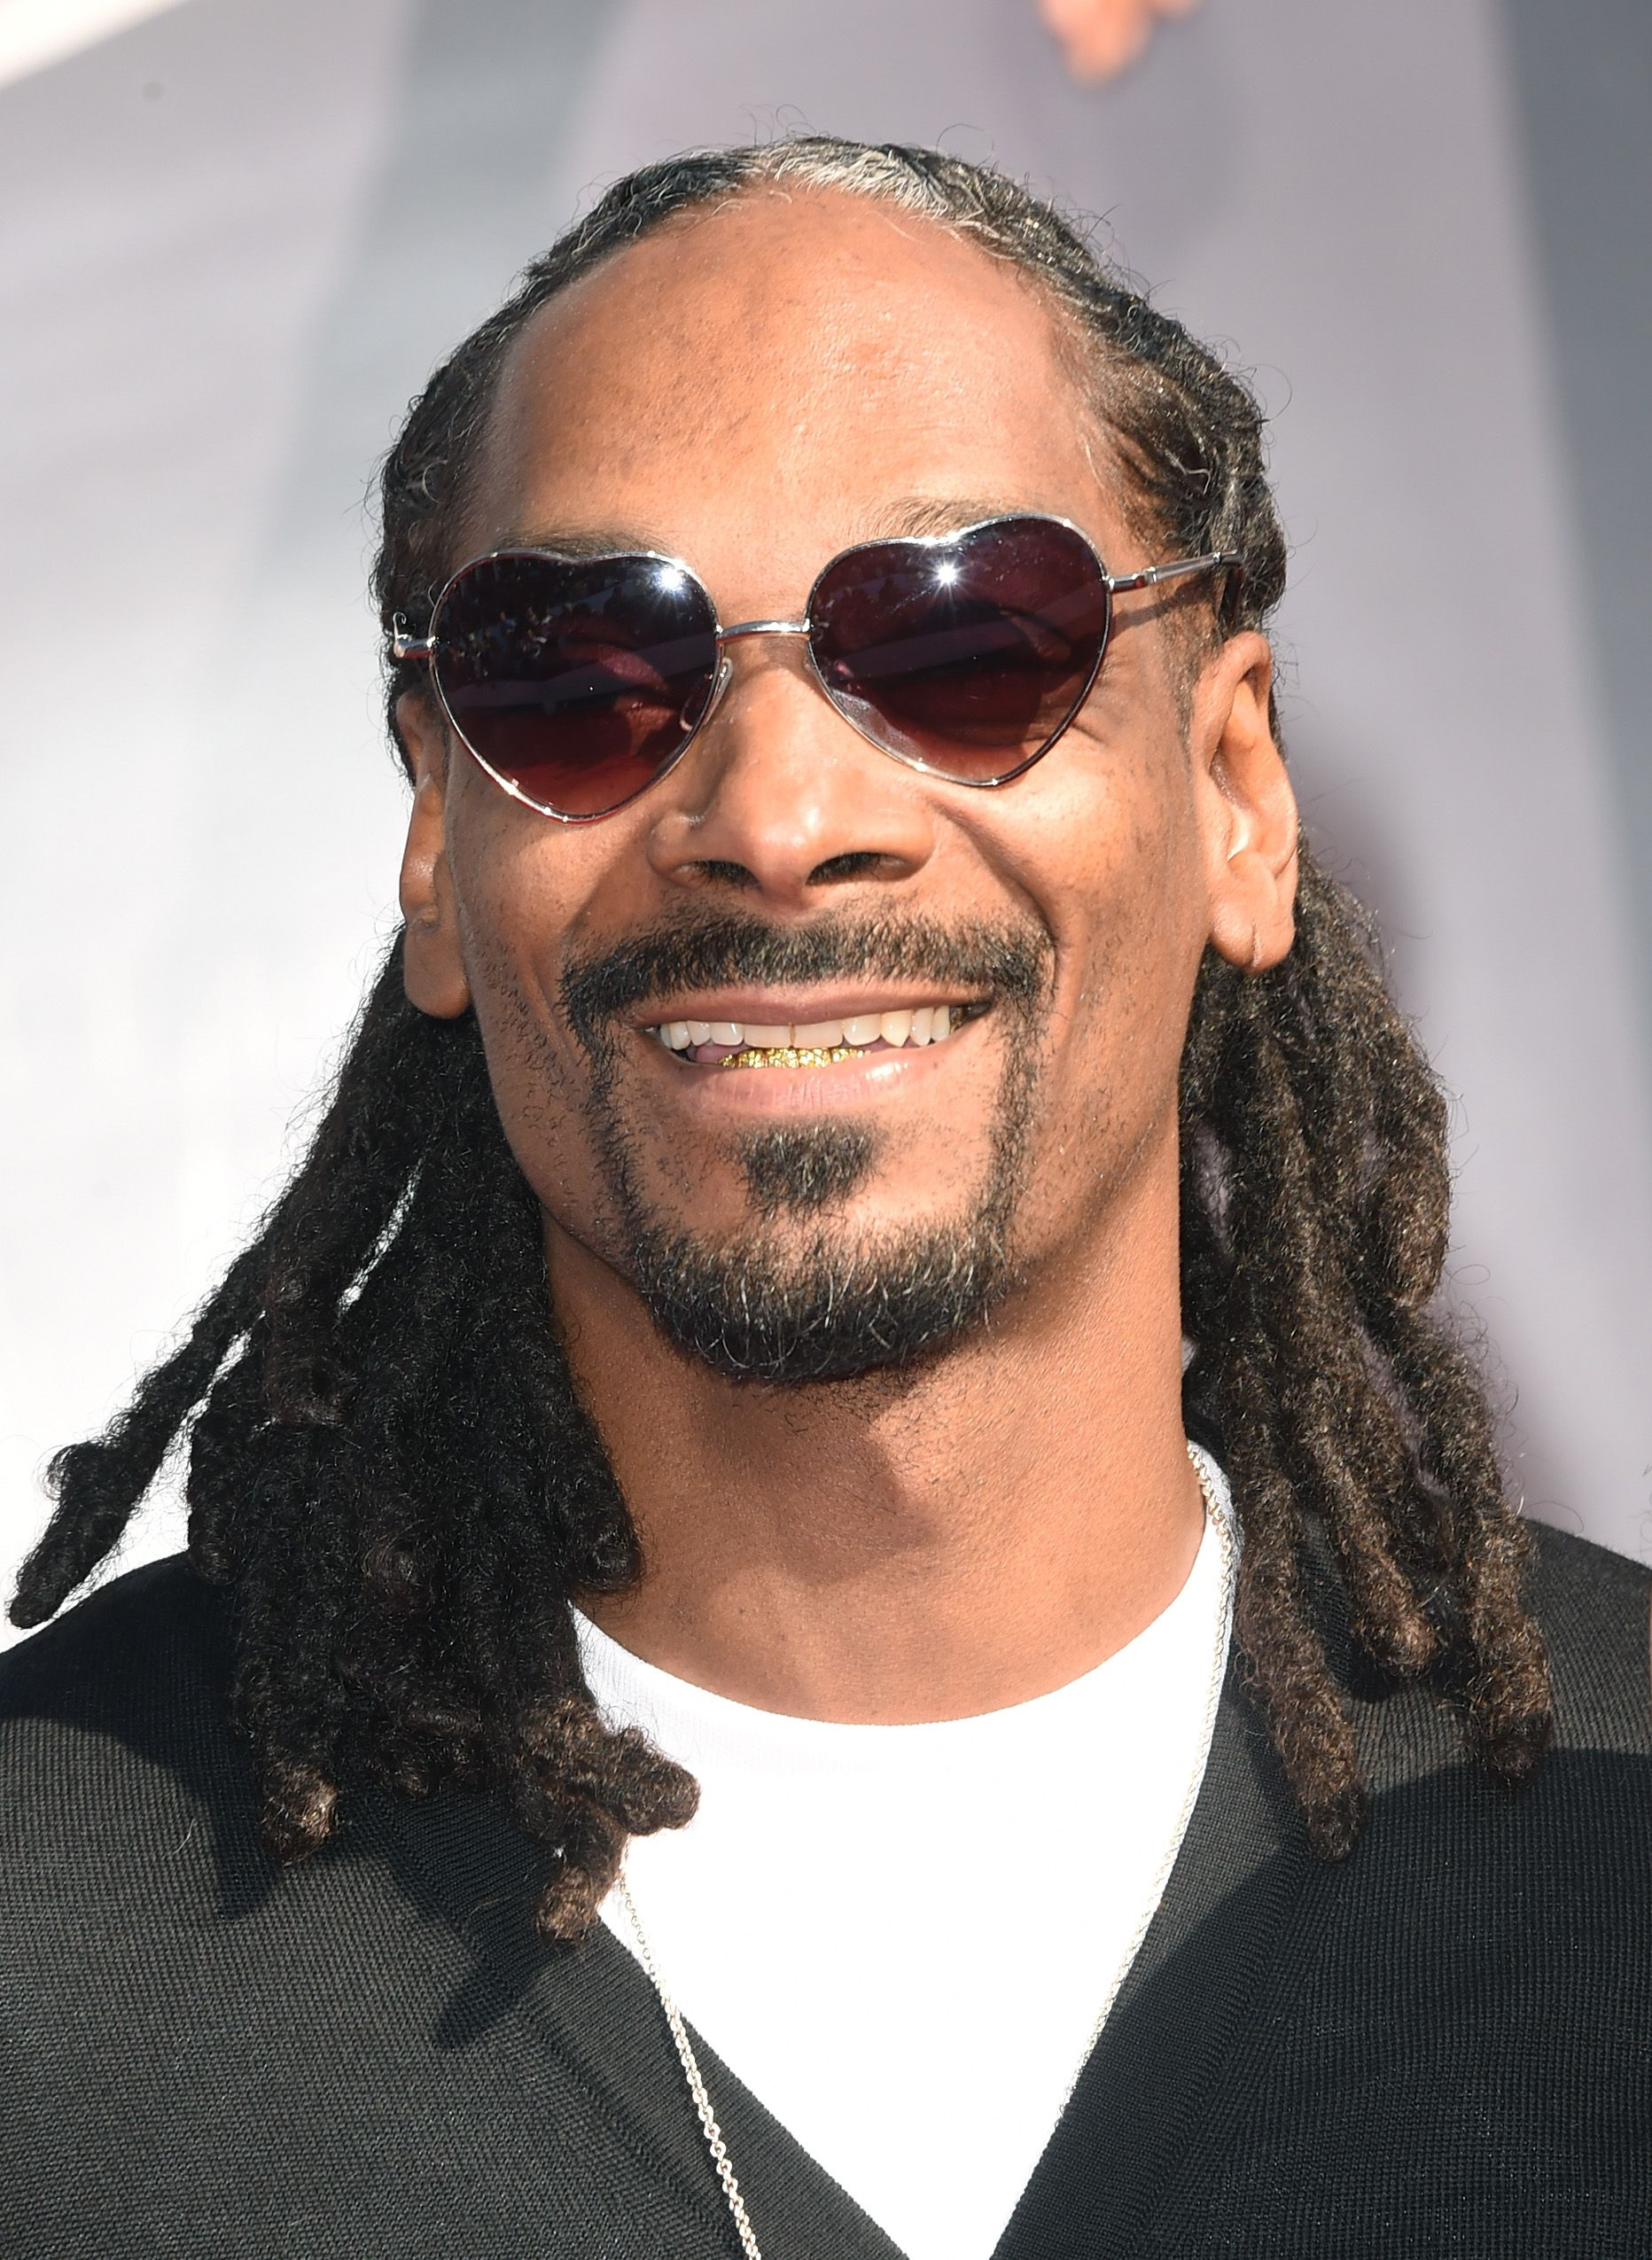 Rapper Snoop Dogg flashes a smile during the 2014 MTV Video Music Awards in Inglewood, California. | Photo: Getty Images